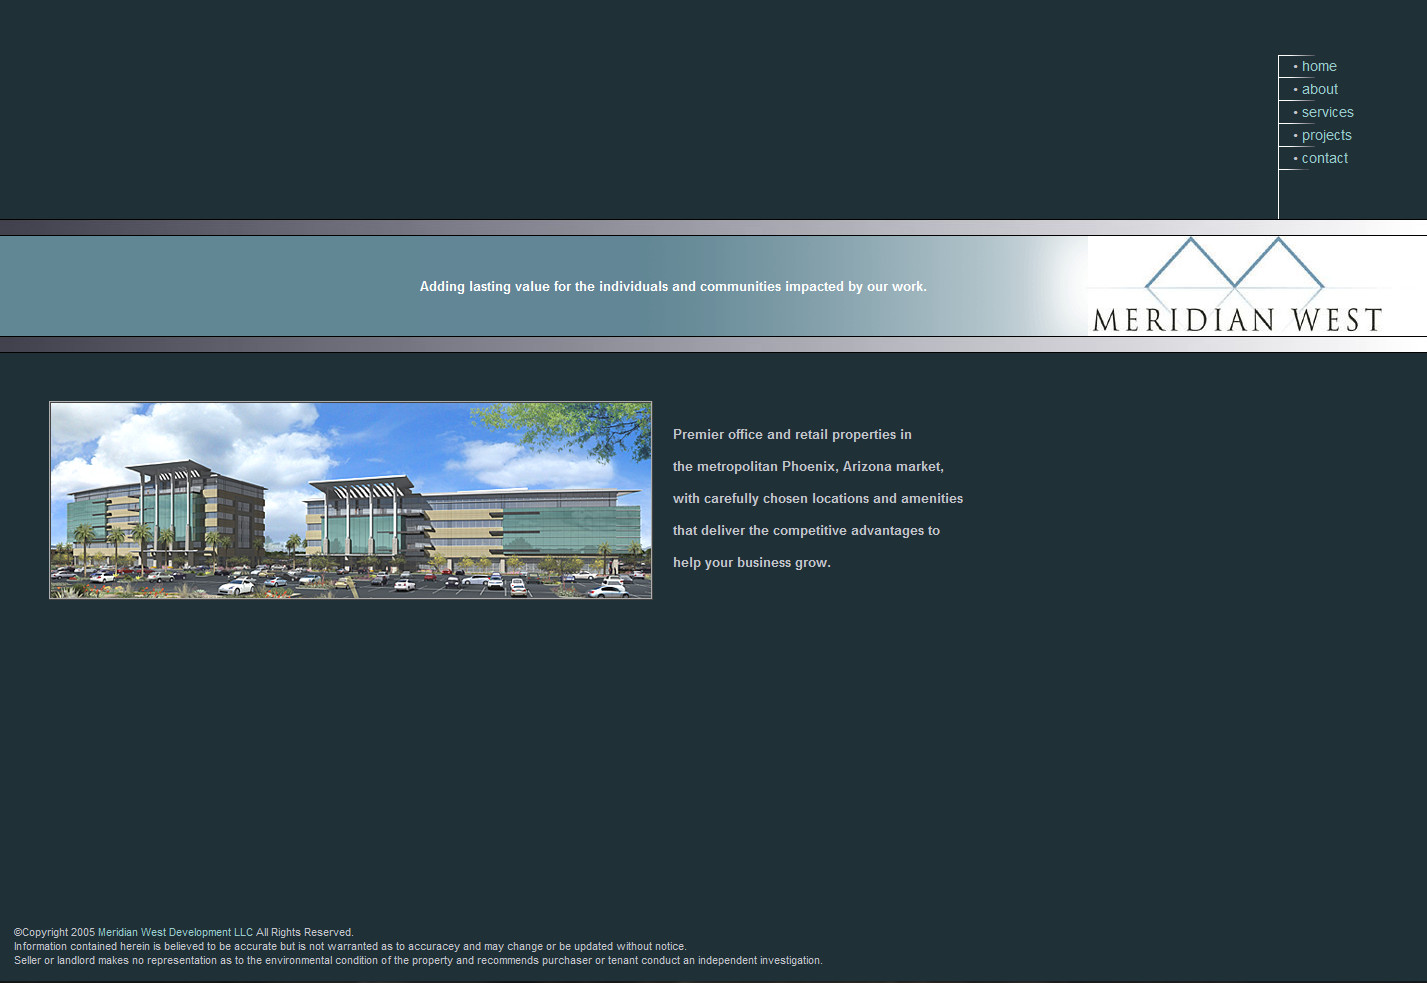 Meridian West Development